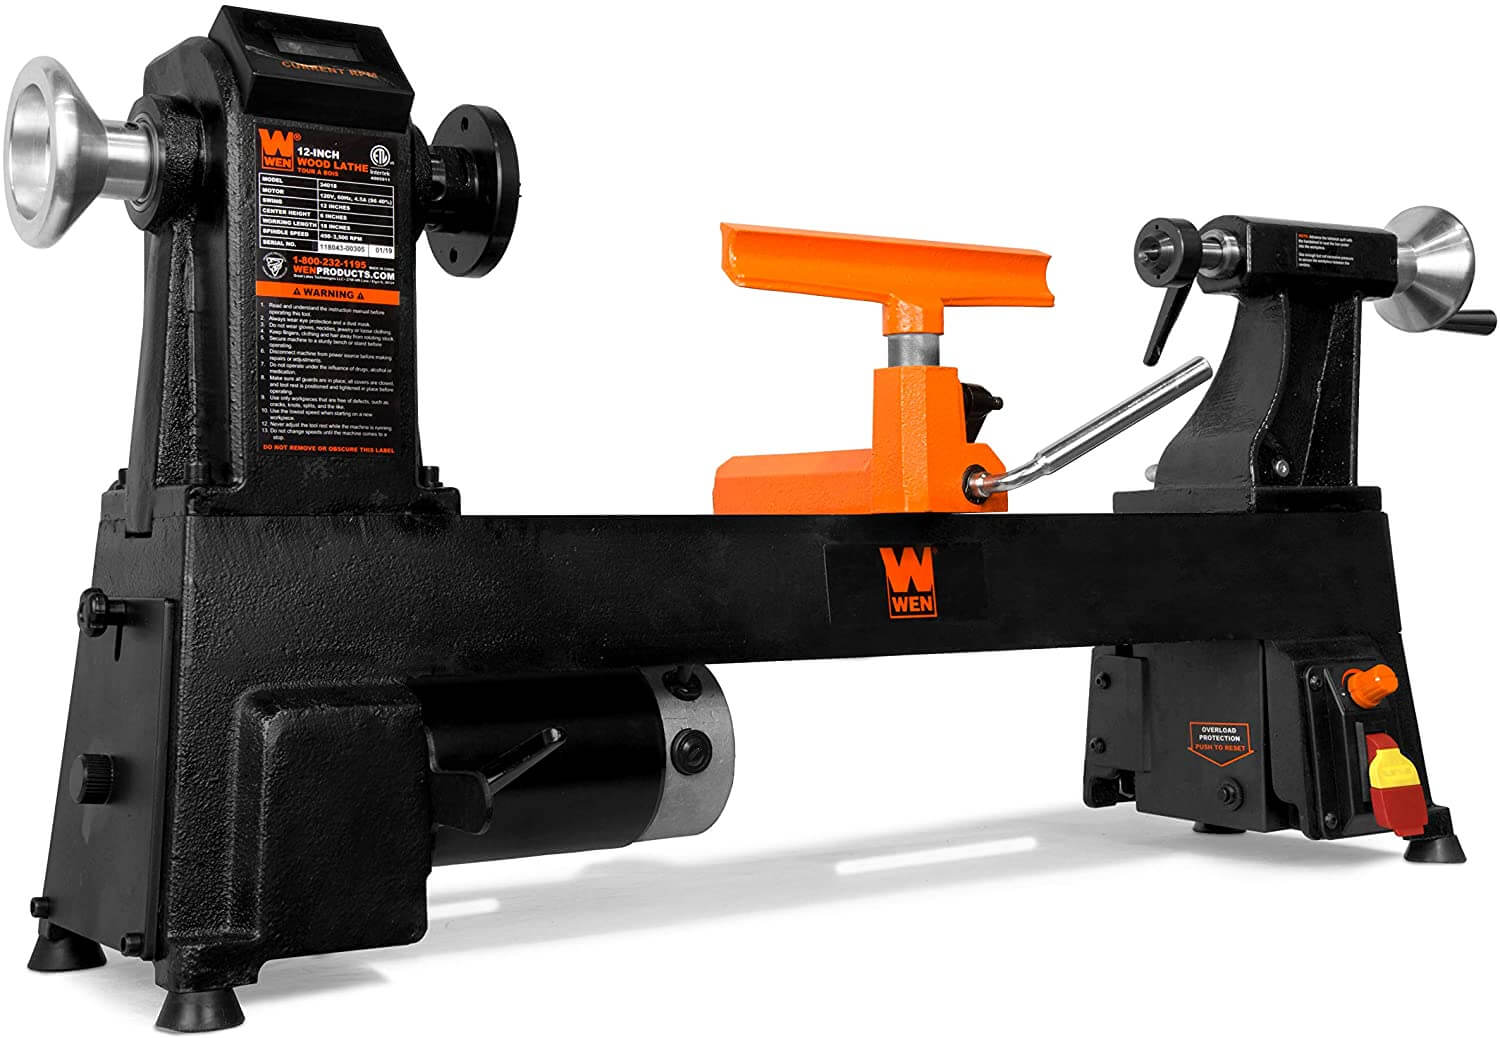 Wen lathe machine for Cue